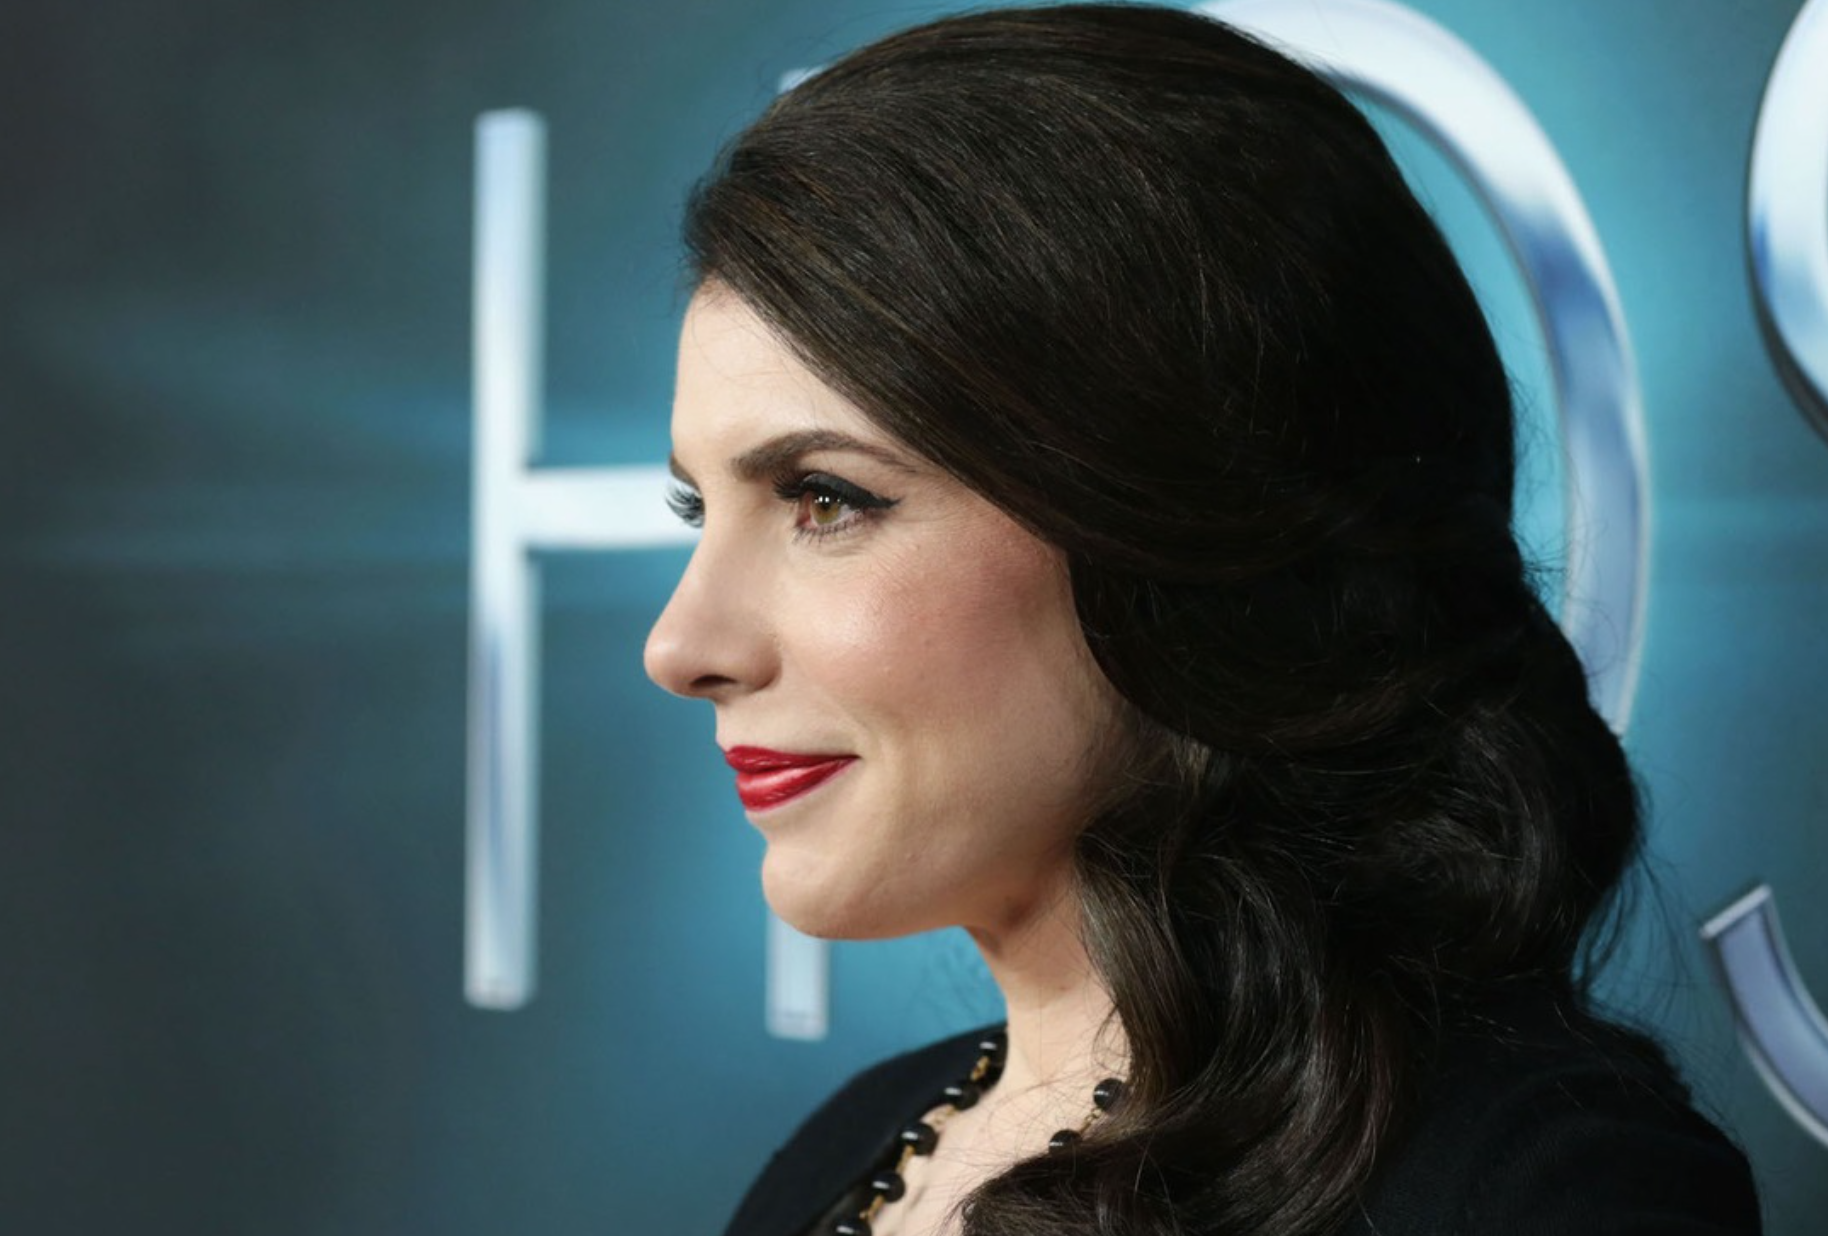 is stephenie meyer writing another book Best known for her twilight series, stephenie meyer's four-book collection has sold over 100 million copies globally in over 50 countries, with translations in 37 different languages.